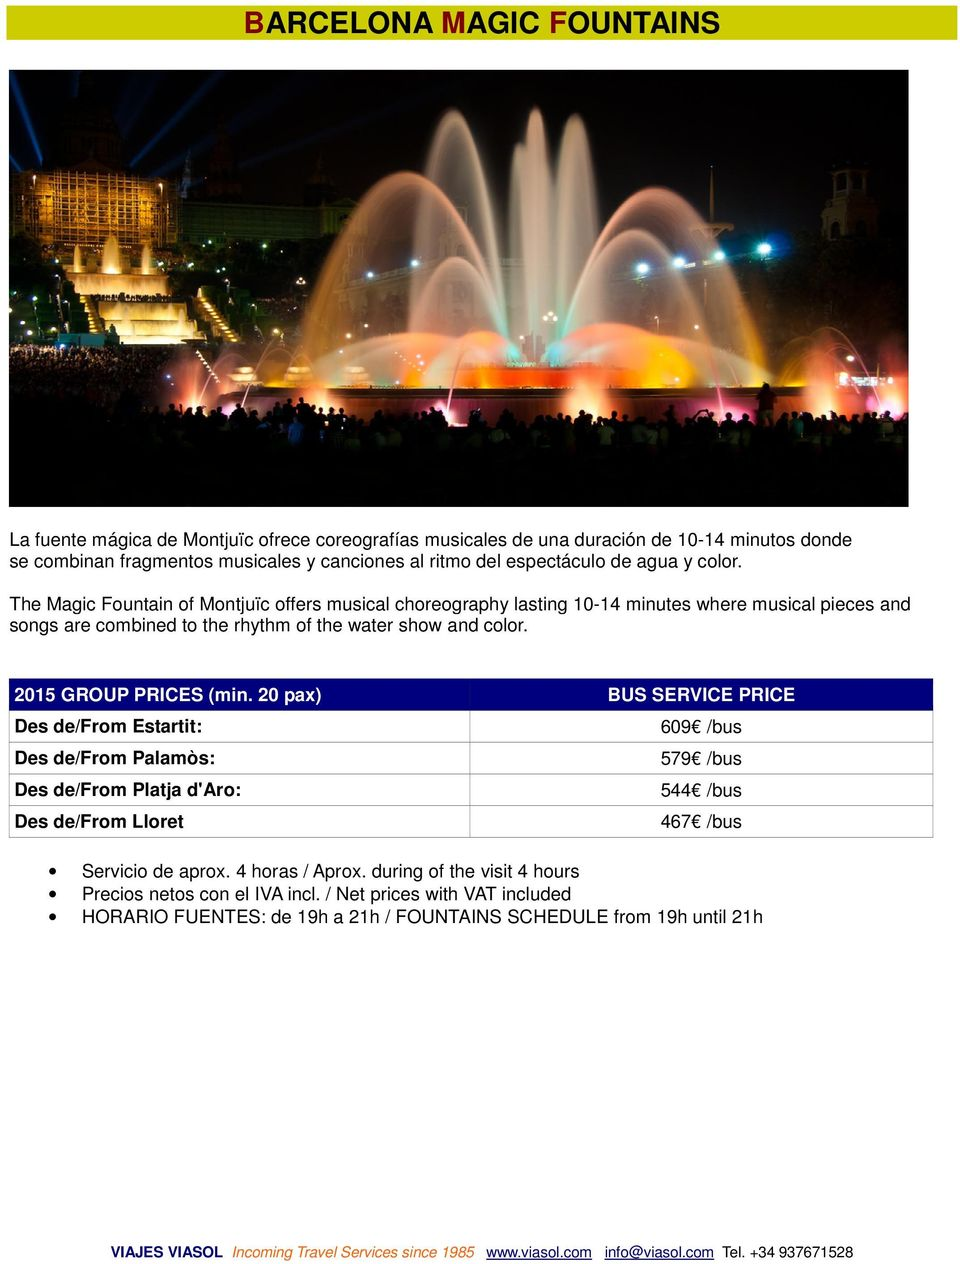 y Música The Magic Fountain of Montjuïc offers musical choreography lasting 10-14 minutes where musical pieces and songs are combined to